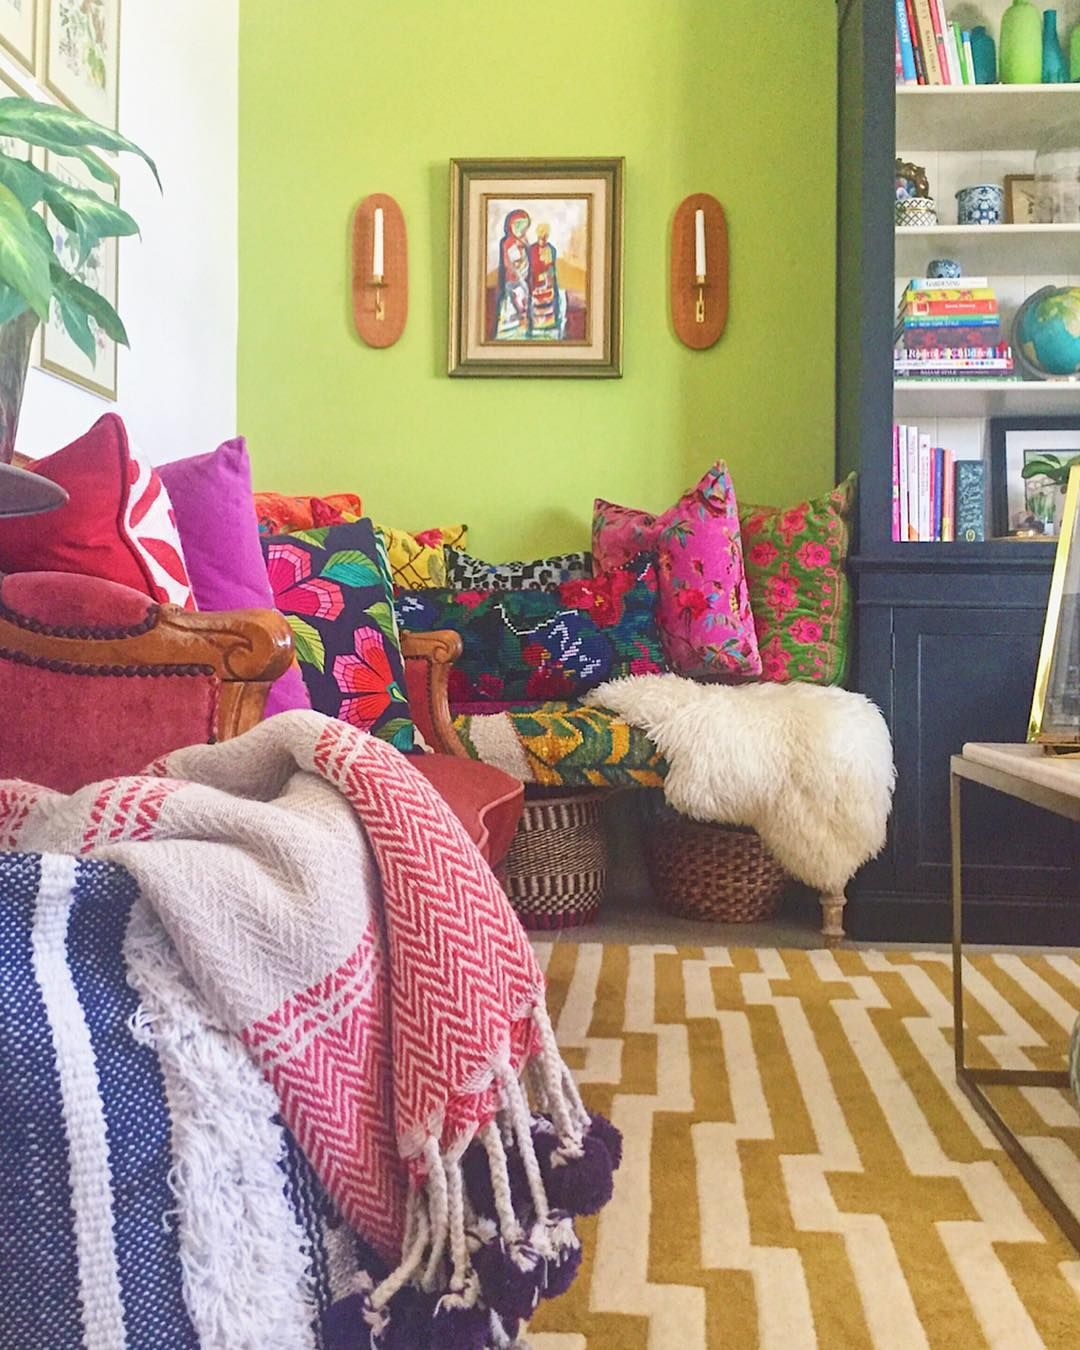 Kilim Bench Colourful Global Eclectic Bohemian Living Space Design Photography By Fait Modern Eclectic Living Room Eclectic Decor Bohemian Living Spaces